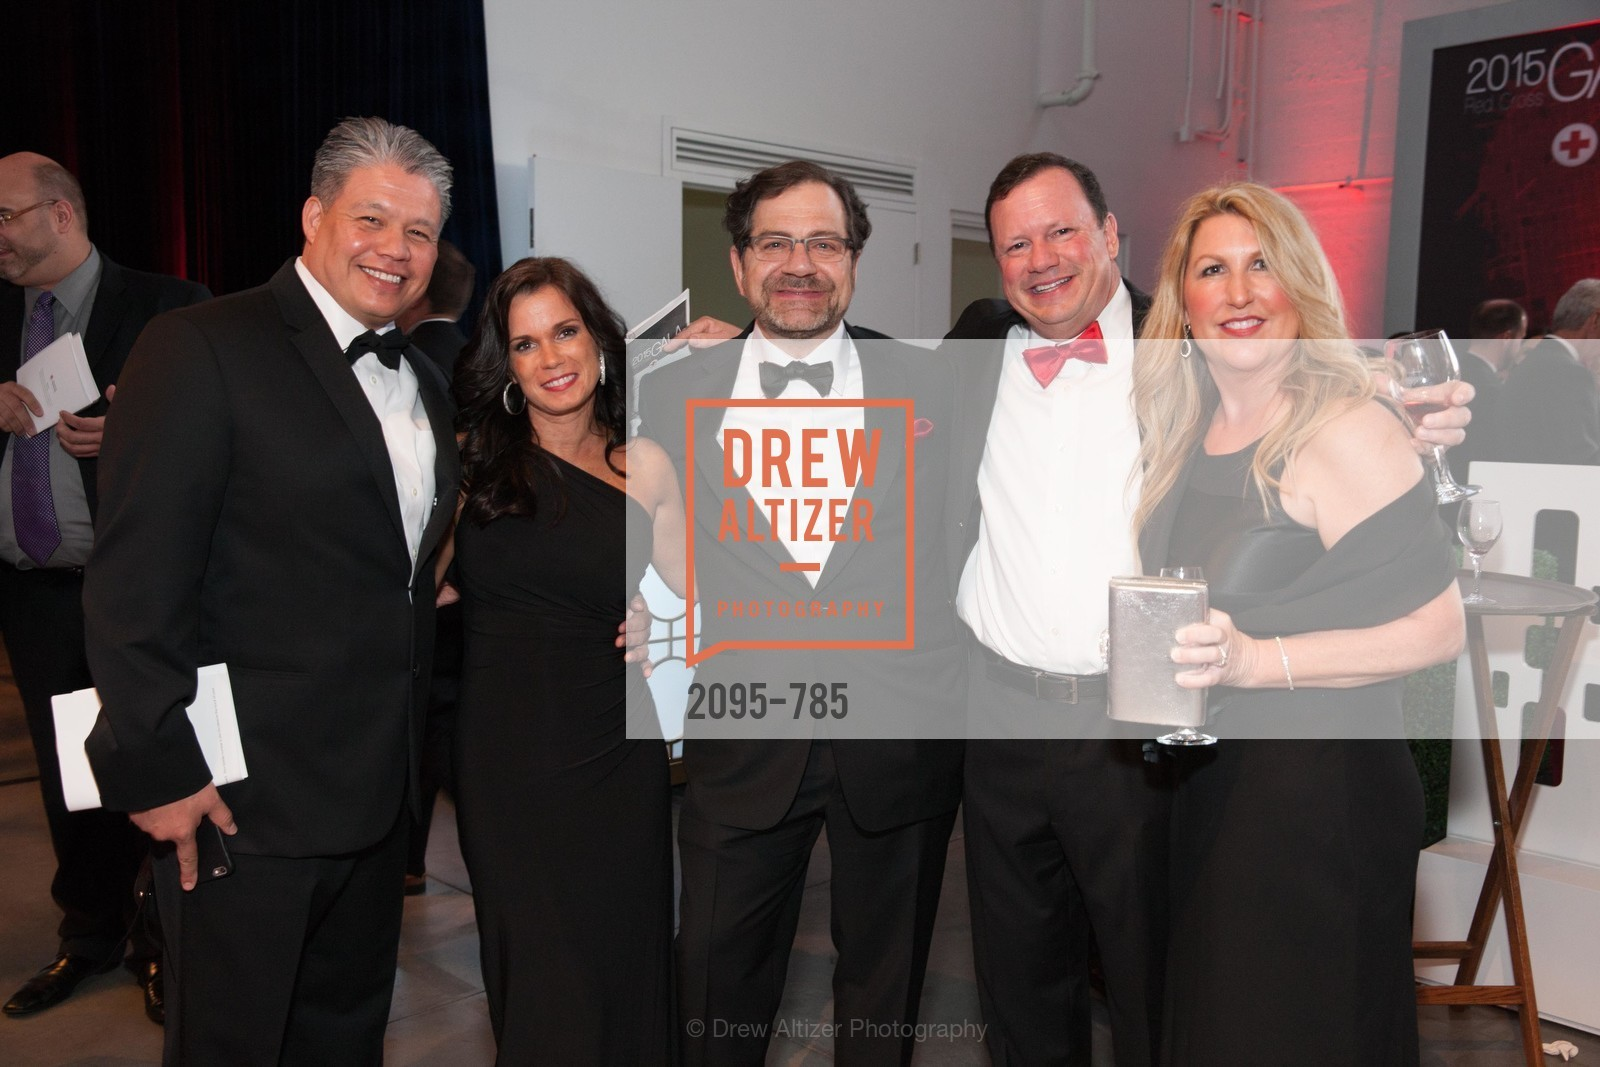 Peter Kenny, Jennifer Kenny, Nick Stavropoulos, John Higgins, Marla Higgins, 2015 RED CROSS Gala, US, April 11th, 2015,Drew Altizer, Drew Altizer Photography, full-service agency, private events, San Francisco photographer, photographer california